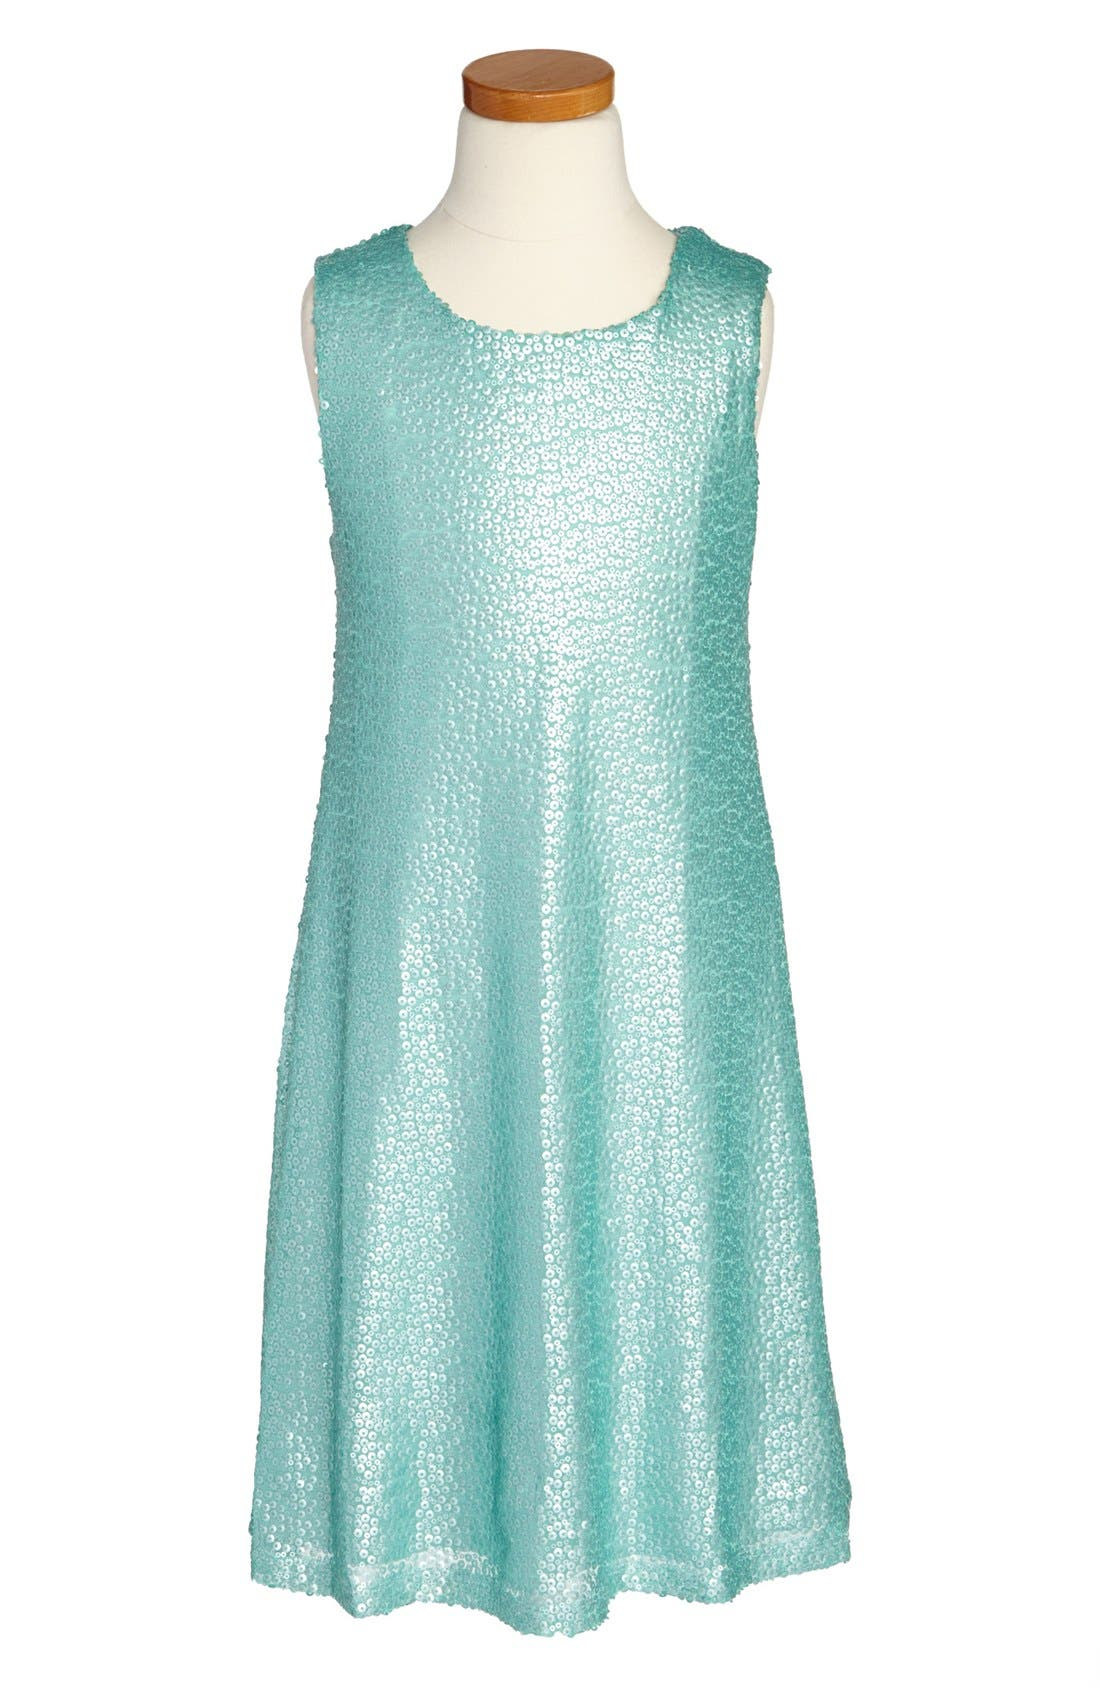 Alternate Image 1 Selected - Zunie Sequin Tank Dress (Big Girls)